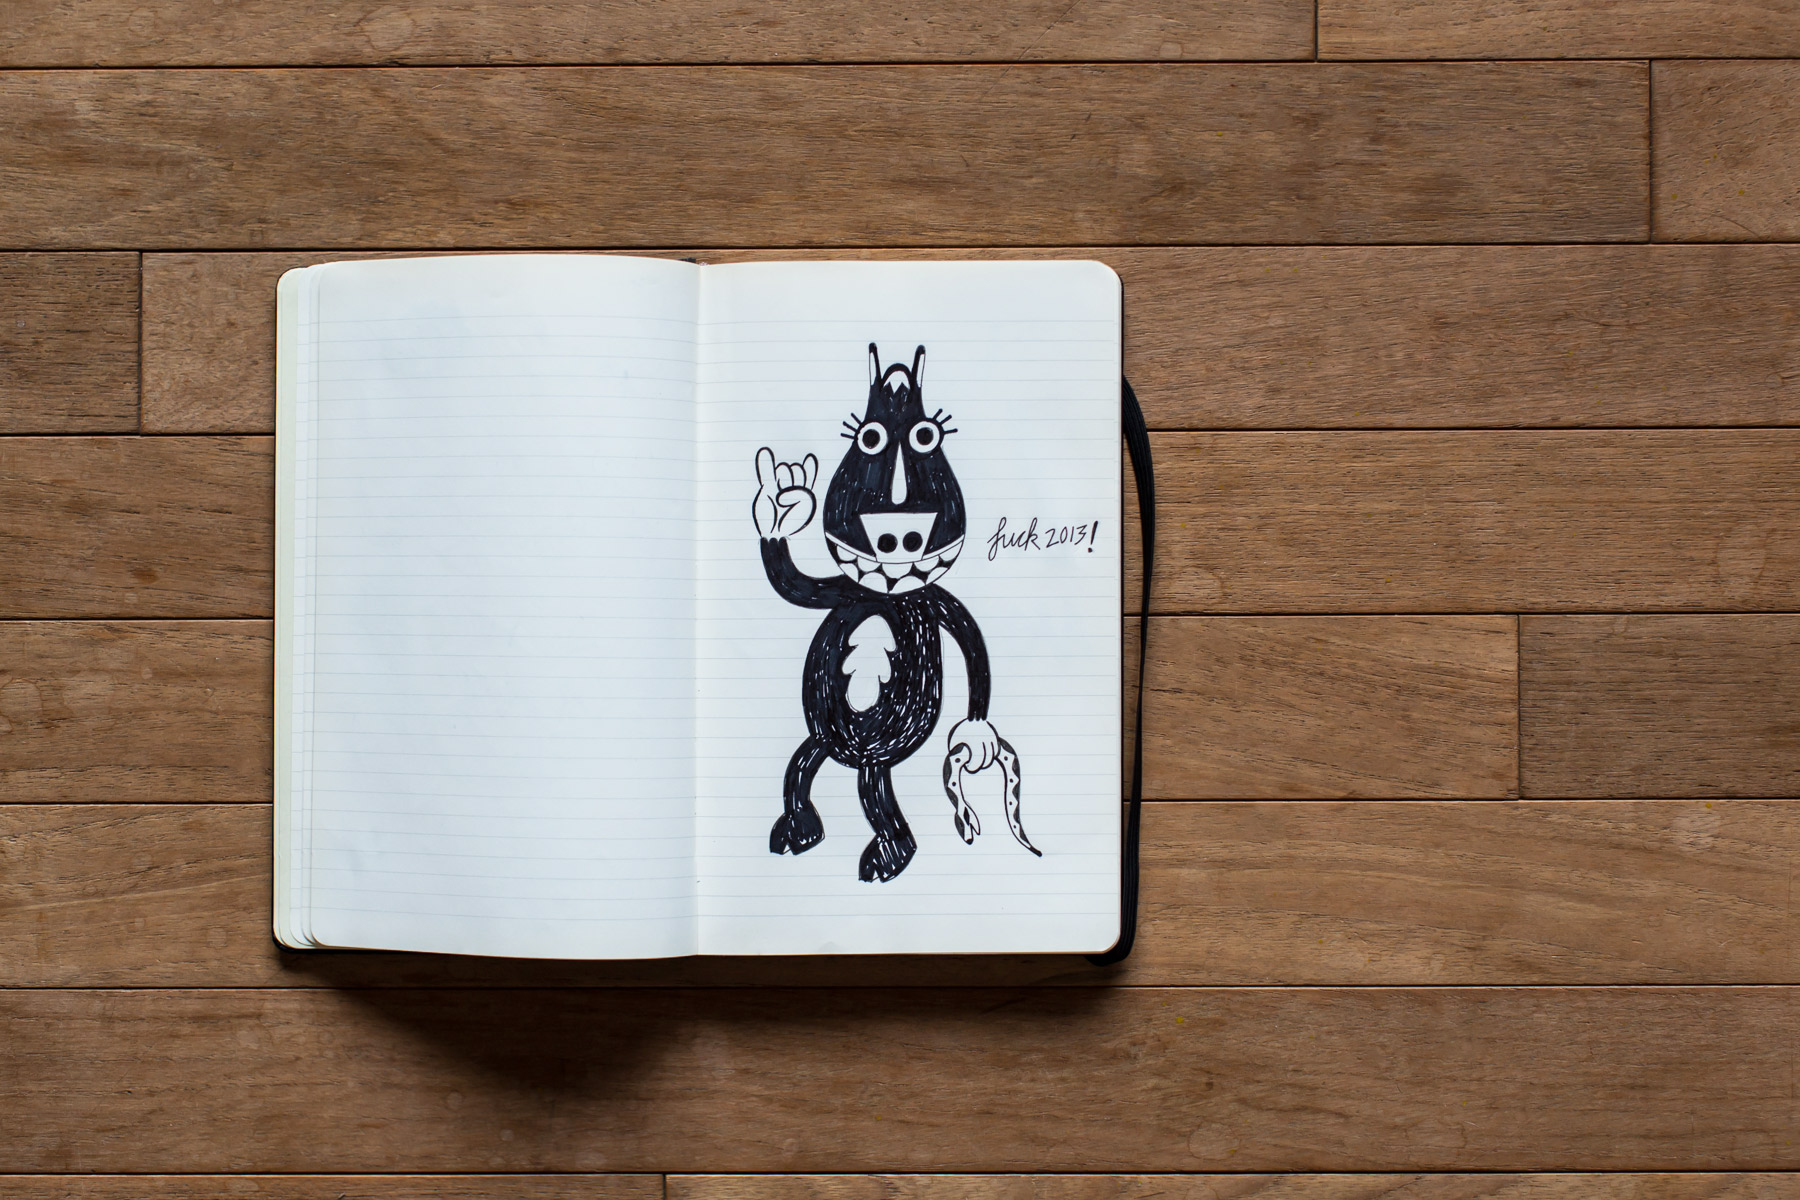 red bull curates protege hypebeast presents pen paper with prodip